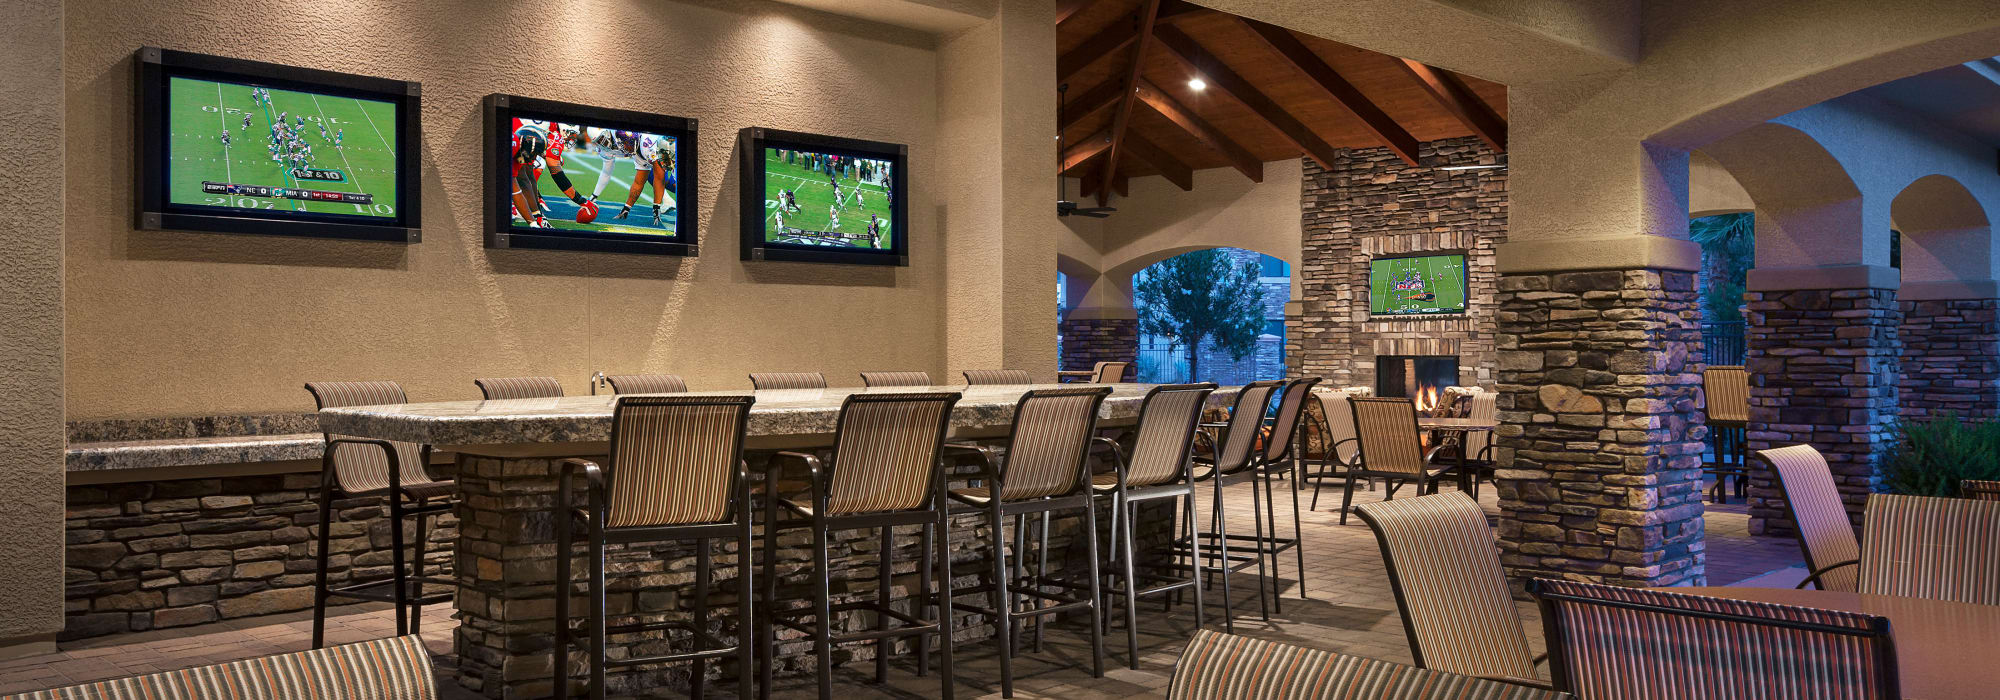 Spacious clubhouse to entertain friends and family at San Travesia in Scottsdale, Arizona